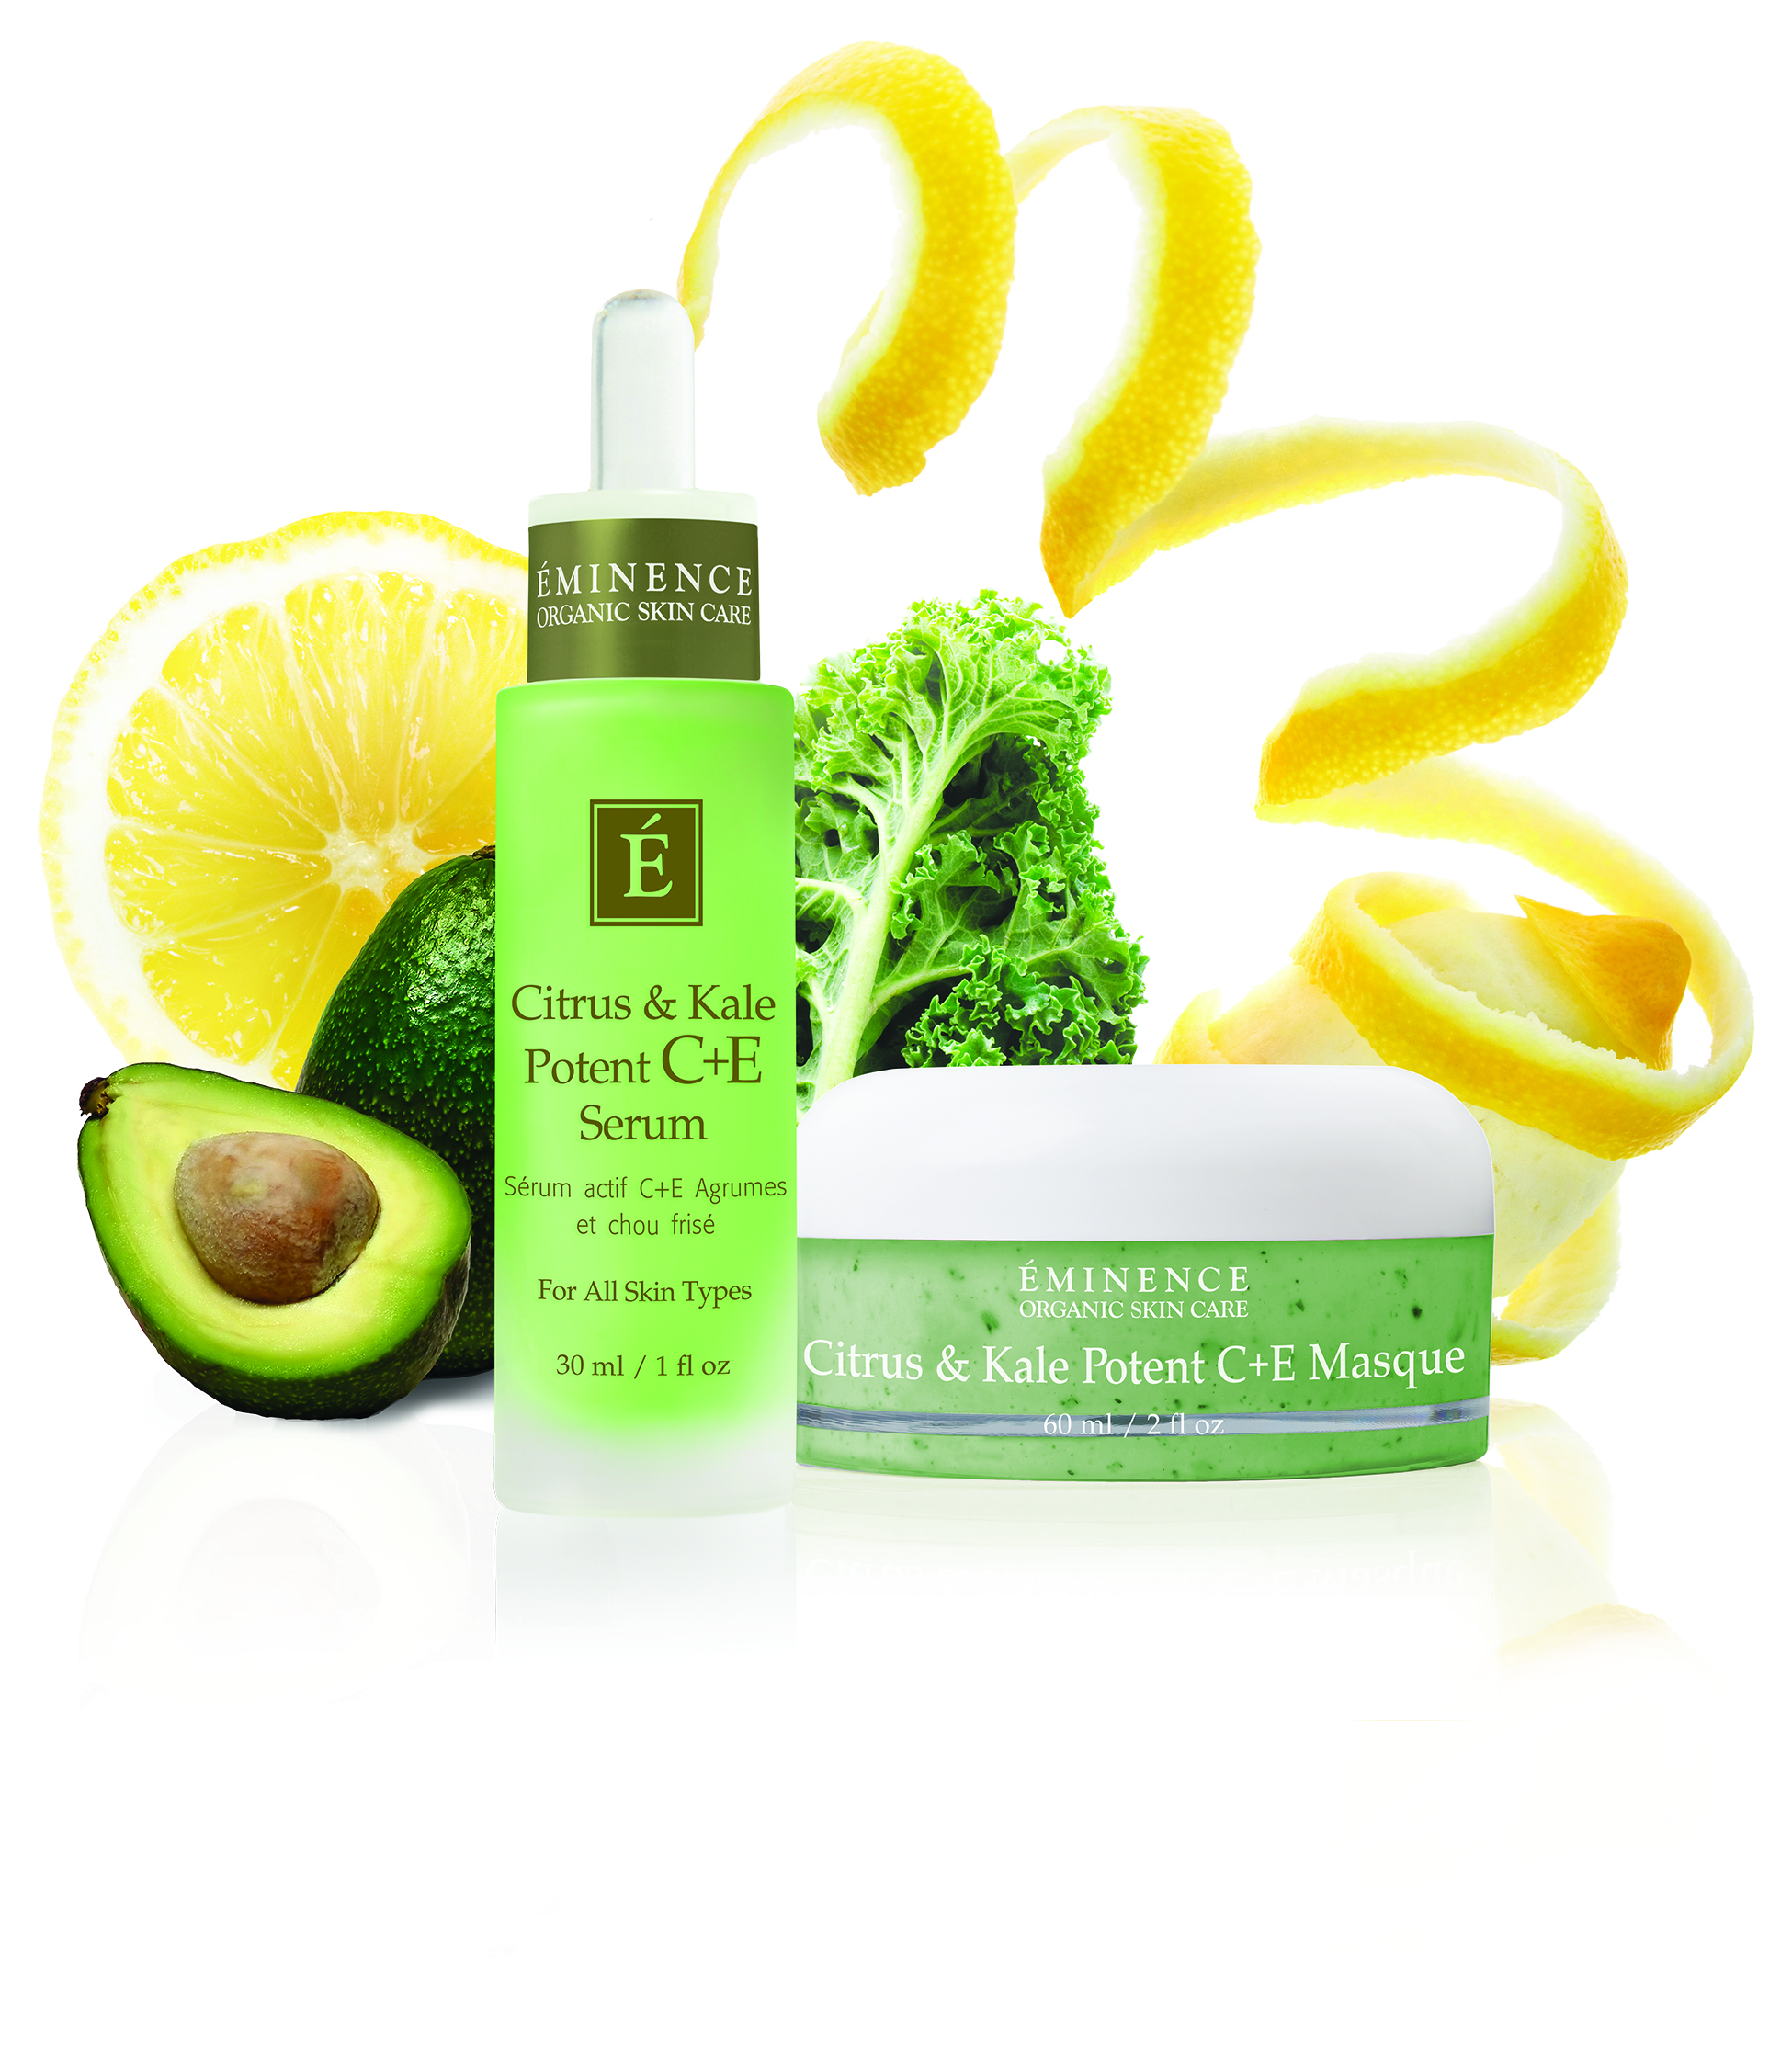 Kale for your face? New Eminence Organics skin care products are a new way to get your greens.